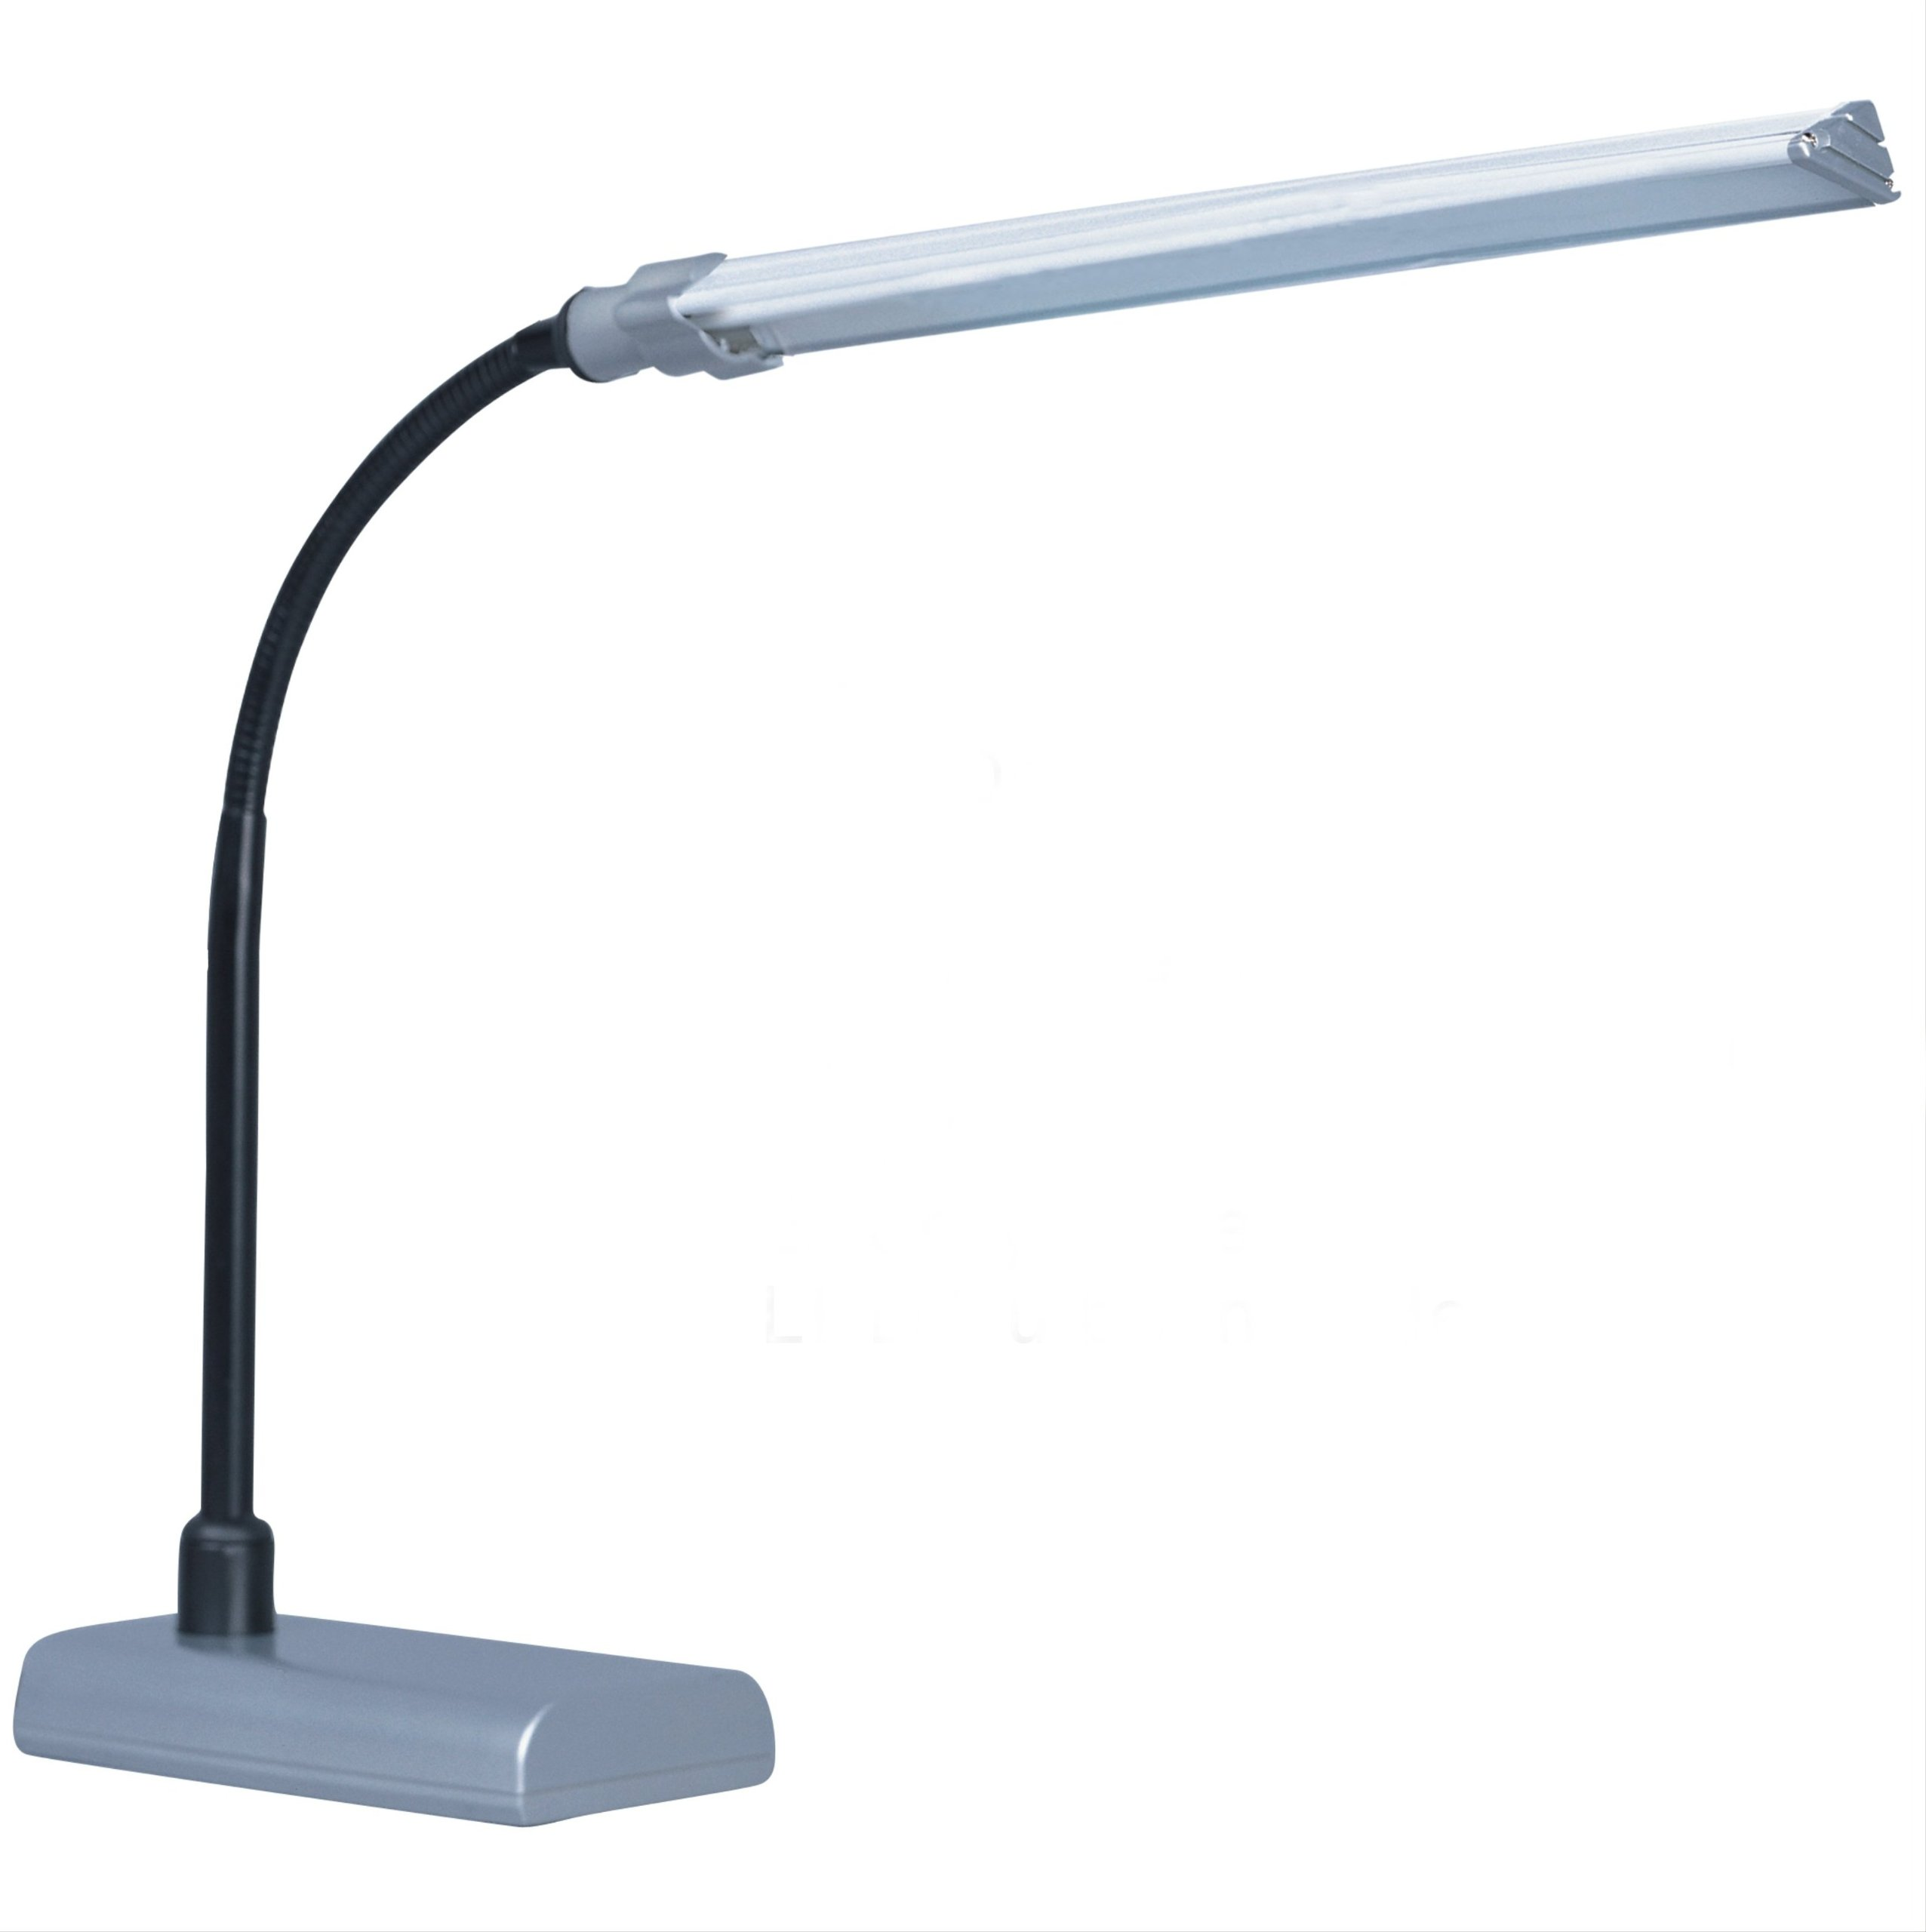 Park Madison Lighting PMD-3701-60 LED Desk Lamp with Fully Adjustable Gooseneck Column, 16'' x 12'' x 12'', Metallic Silver Finish